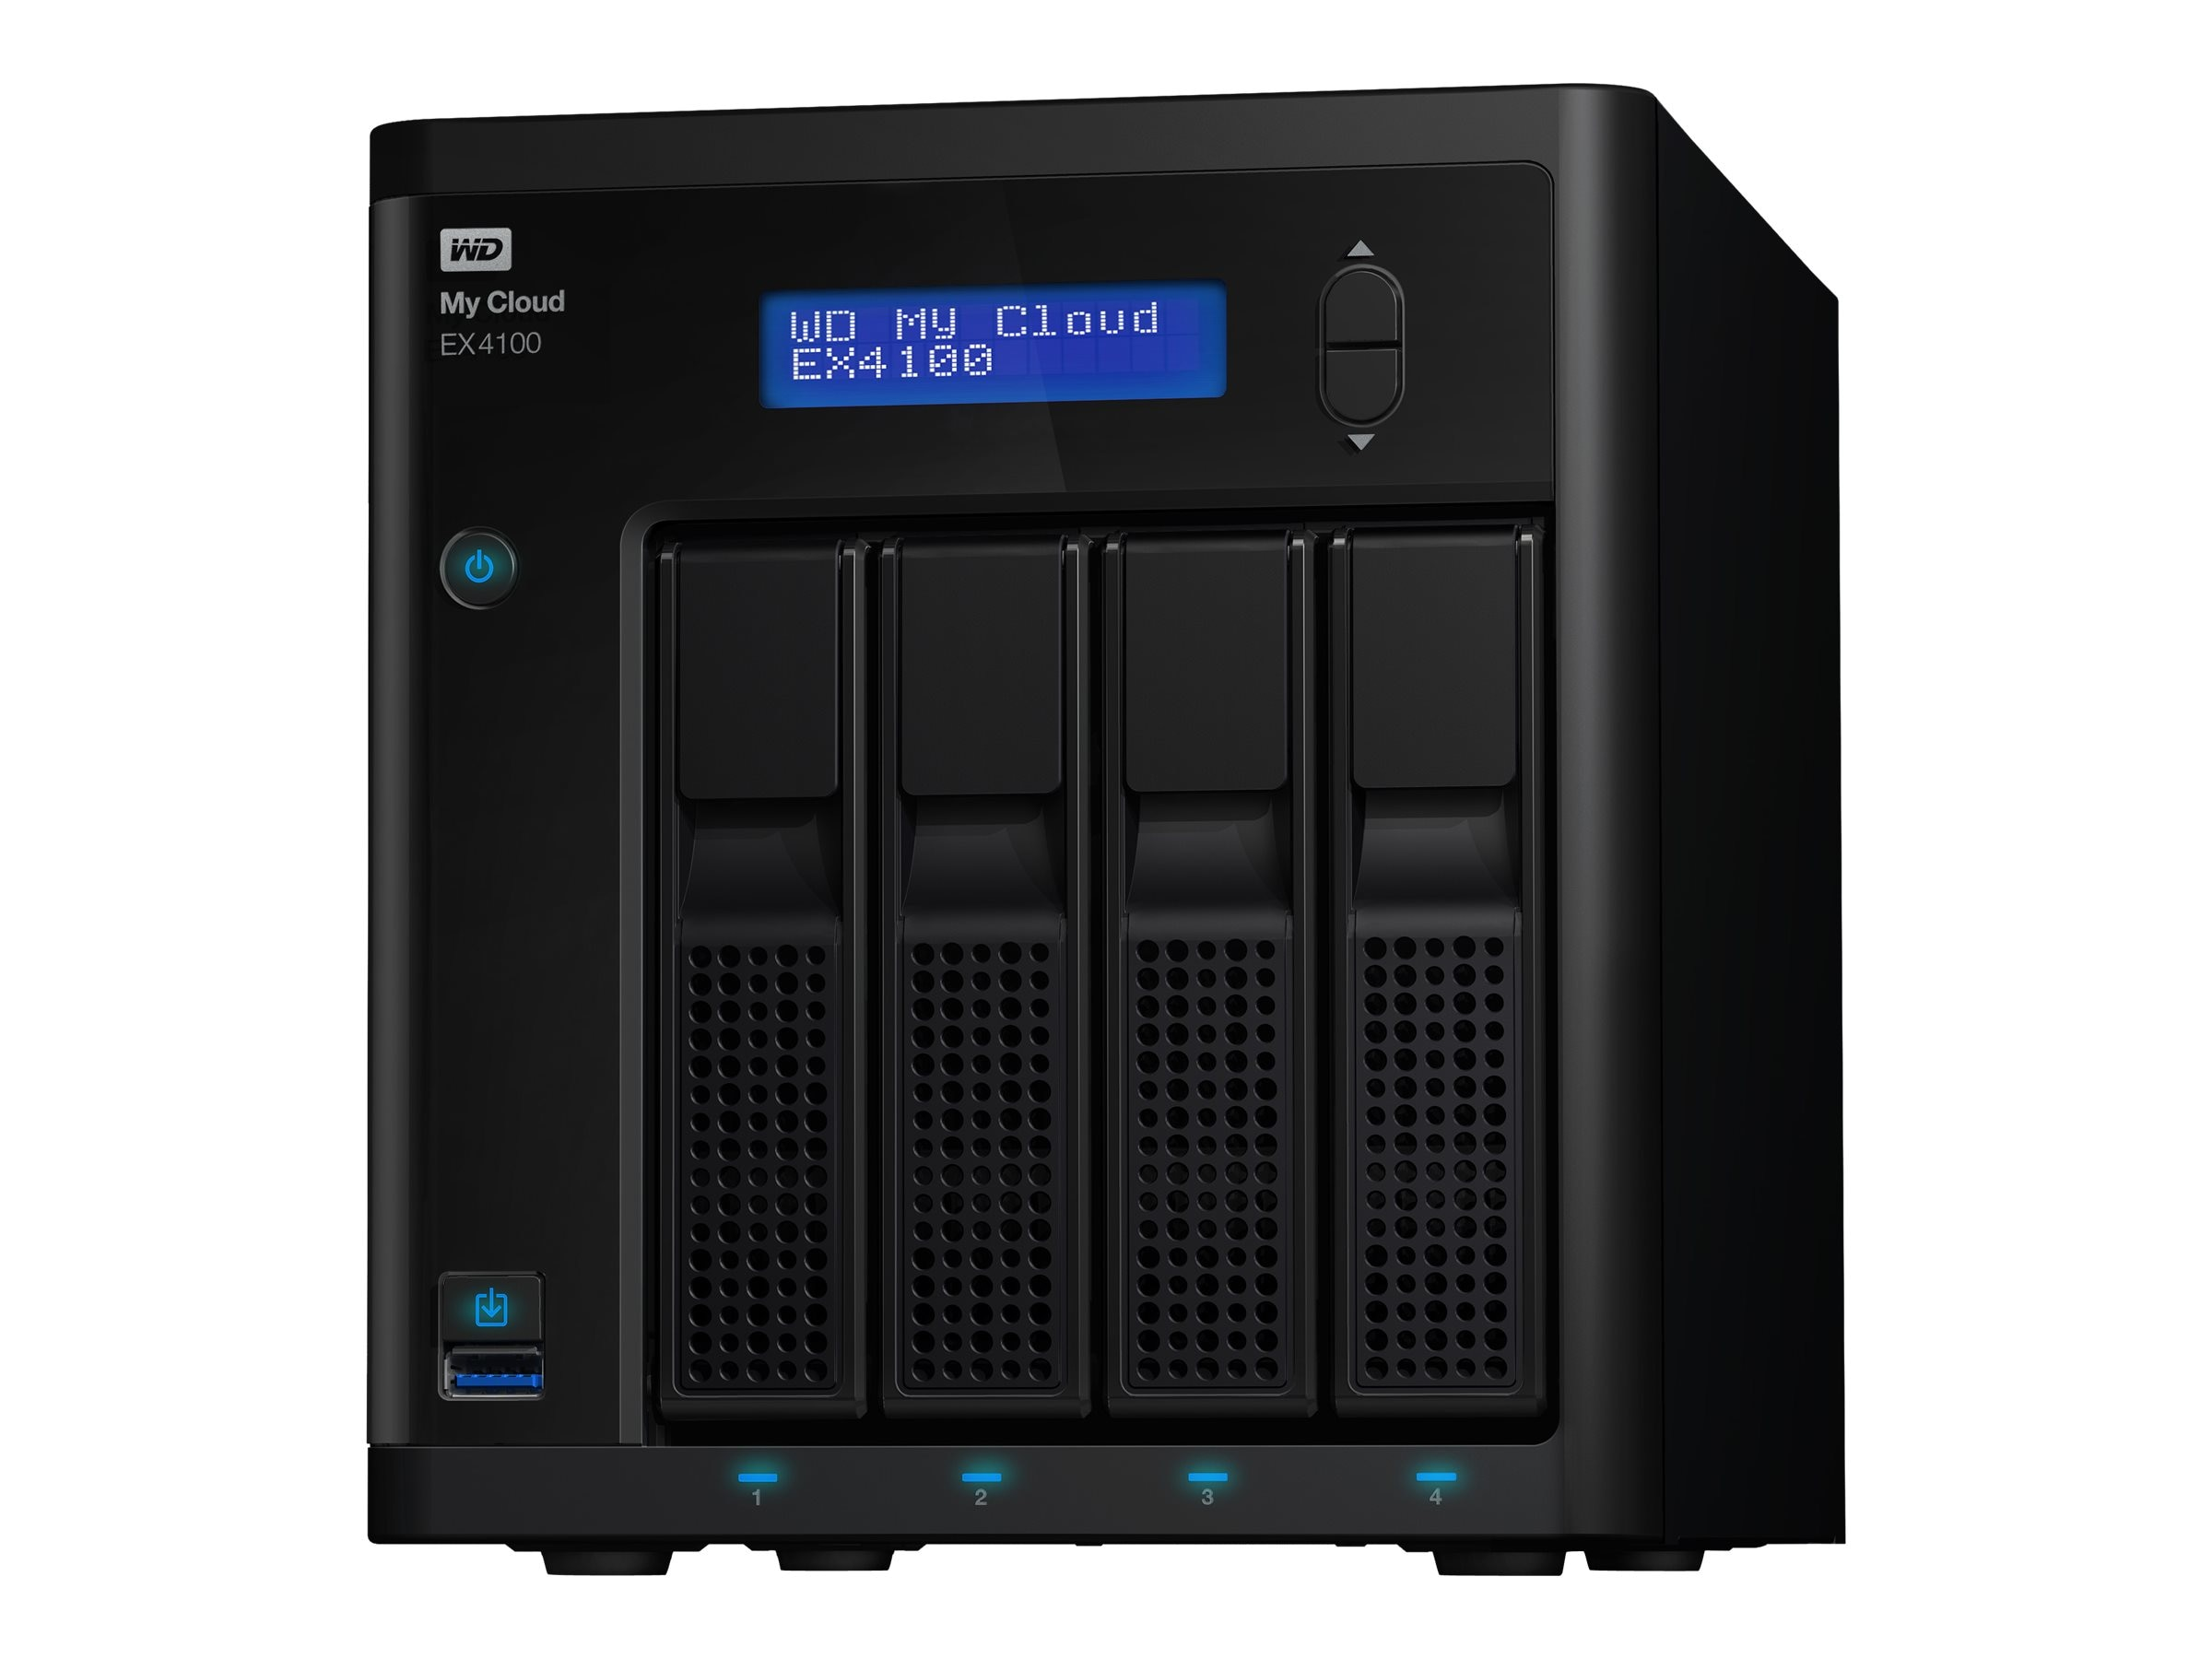 WD 8TB My Cloud EX4100 Network Attached Storage, WDBWZE0080KBK-NESN, 18442843, Network Attached Storage